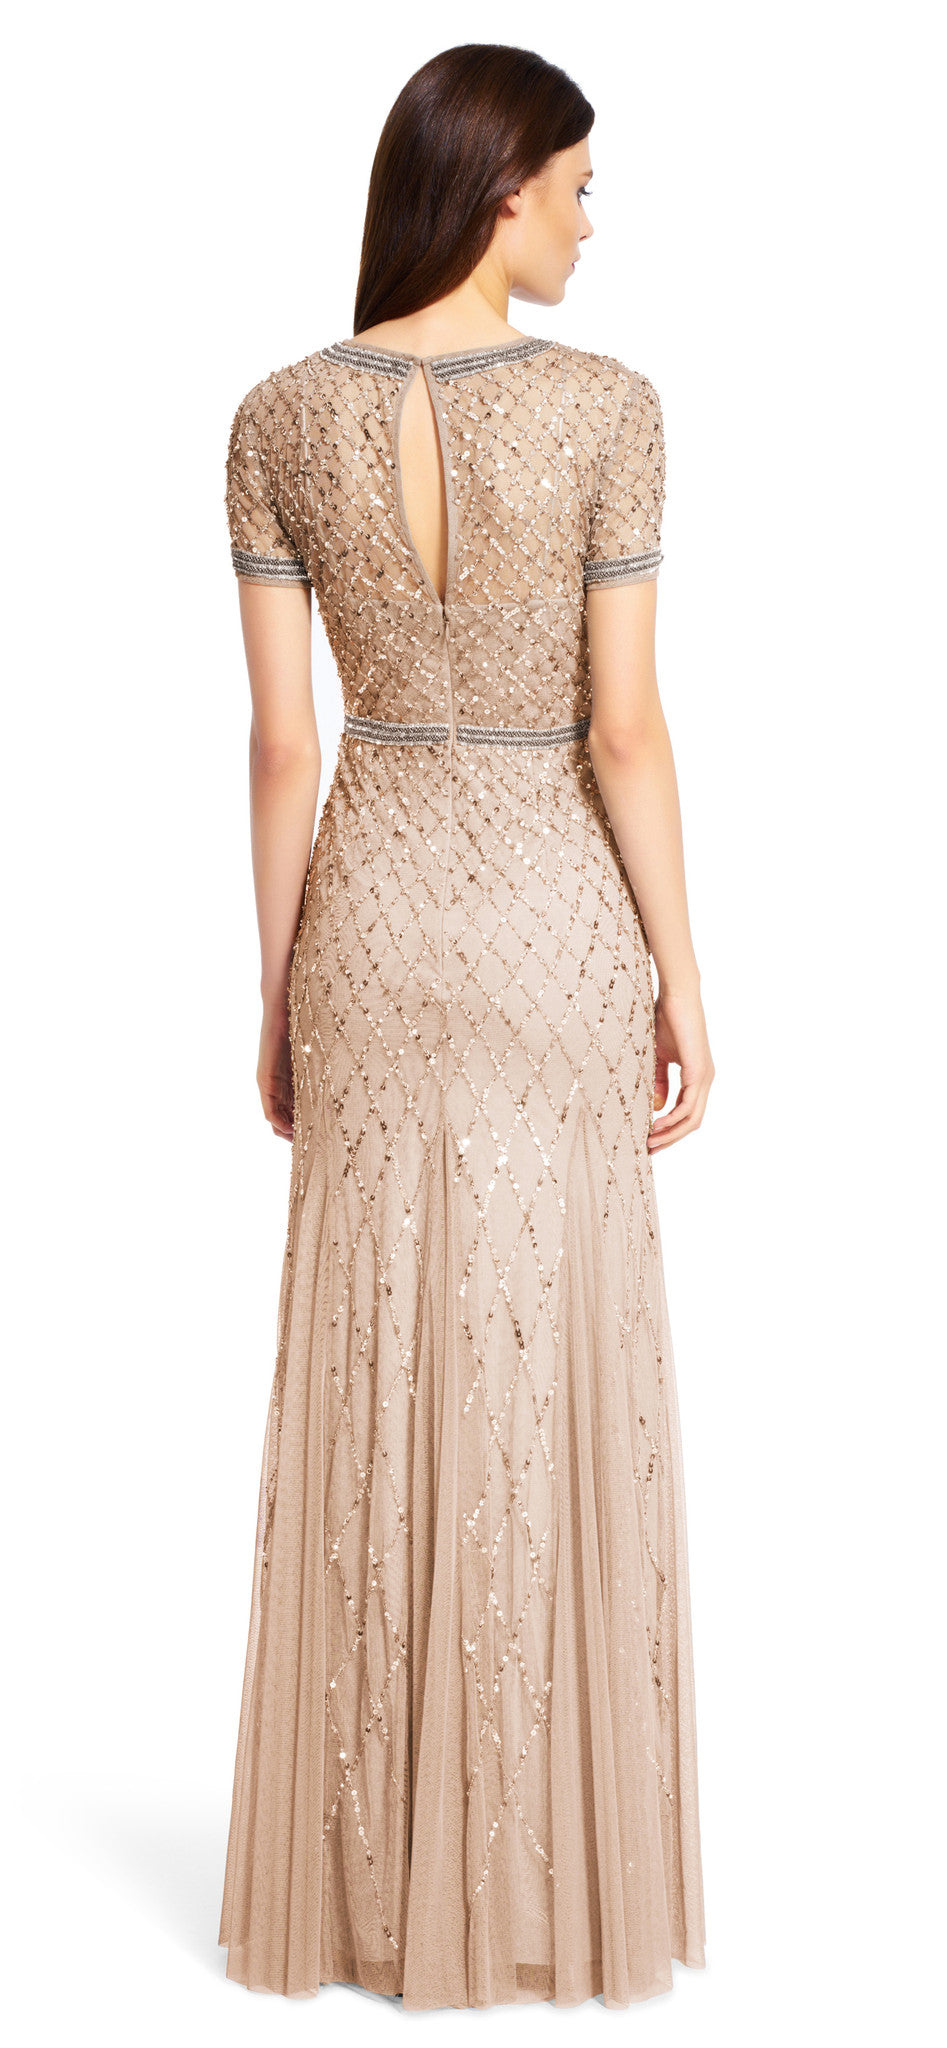 Adrianna Papell Beaded Mesh Gown - Champagne - Adinas Bridal